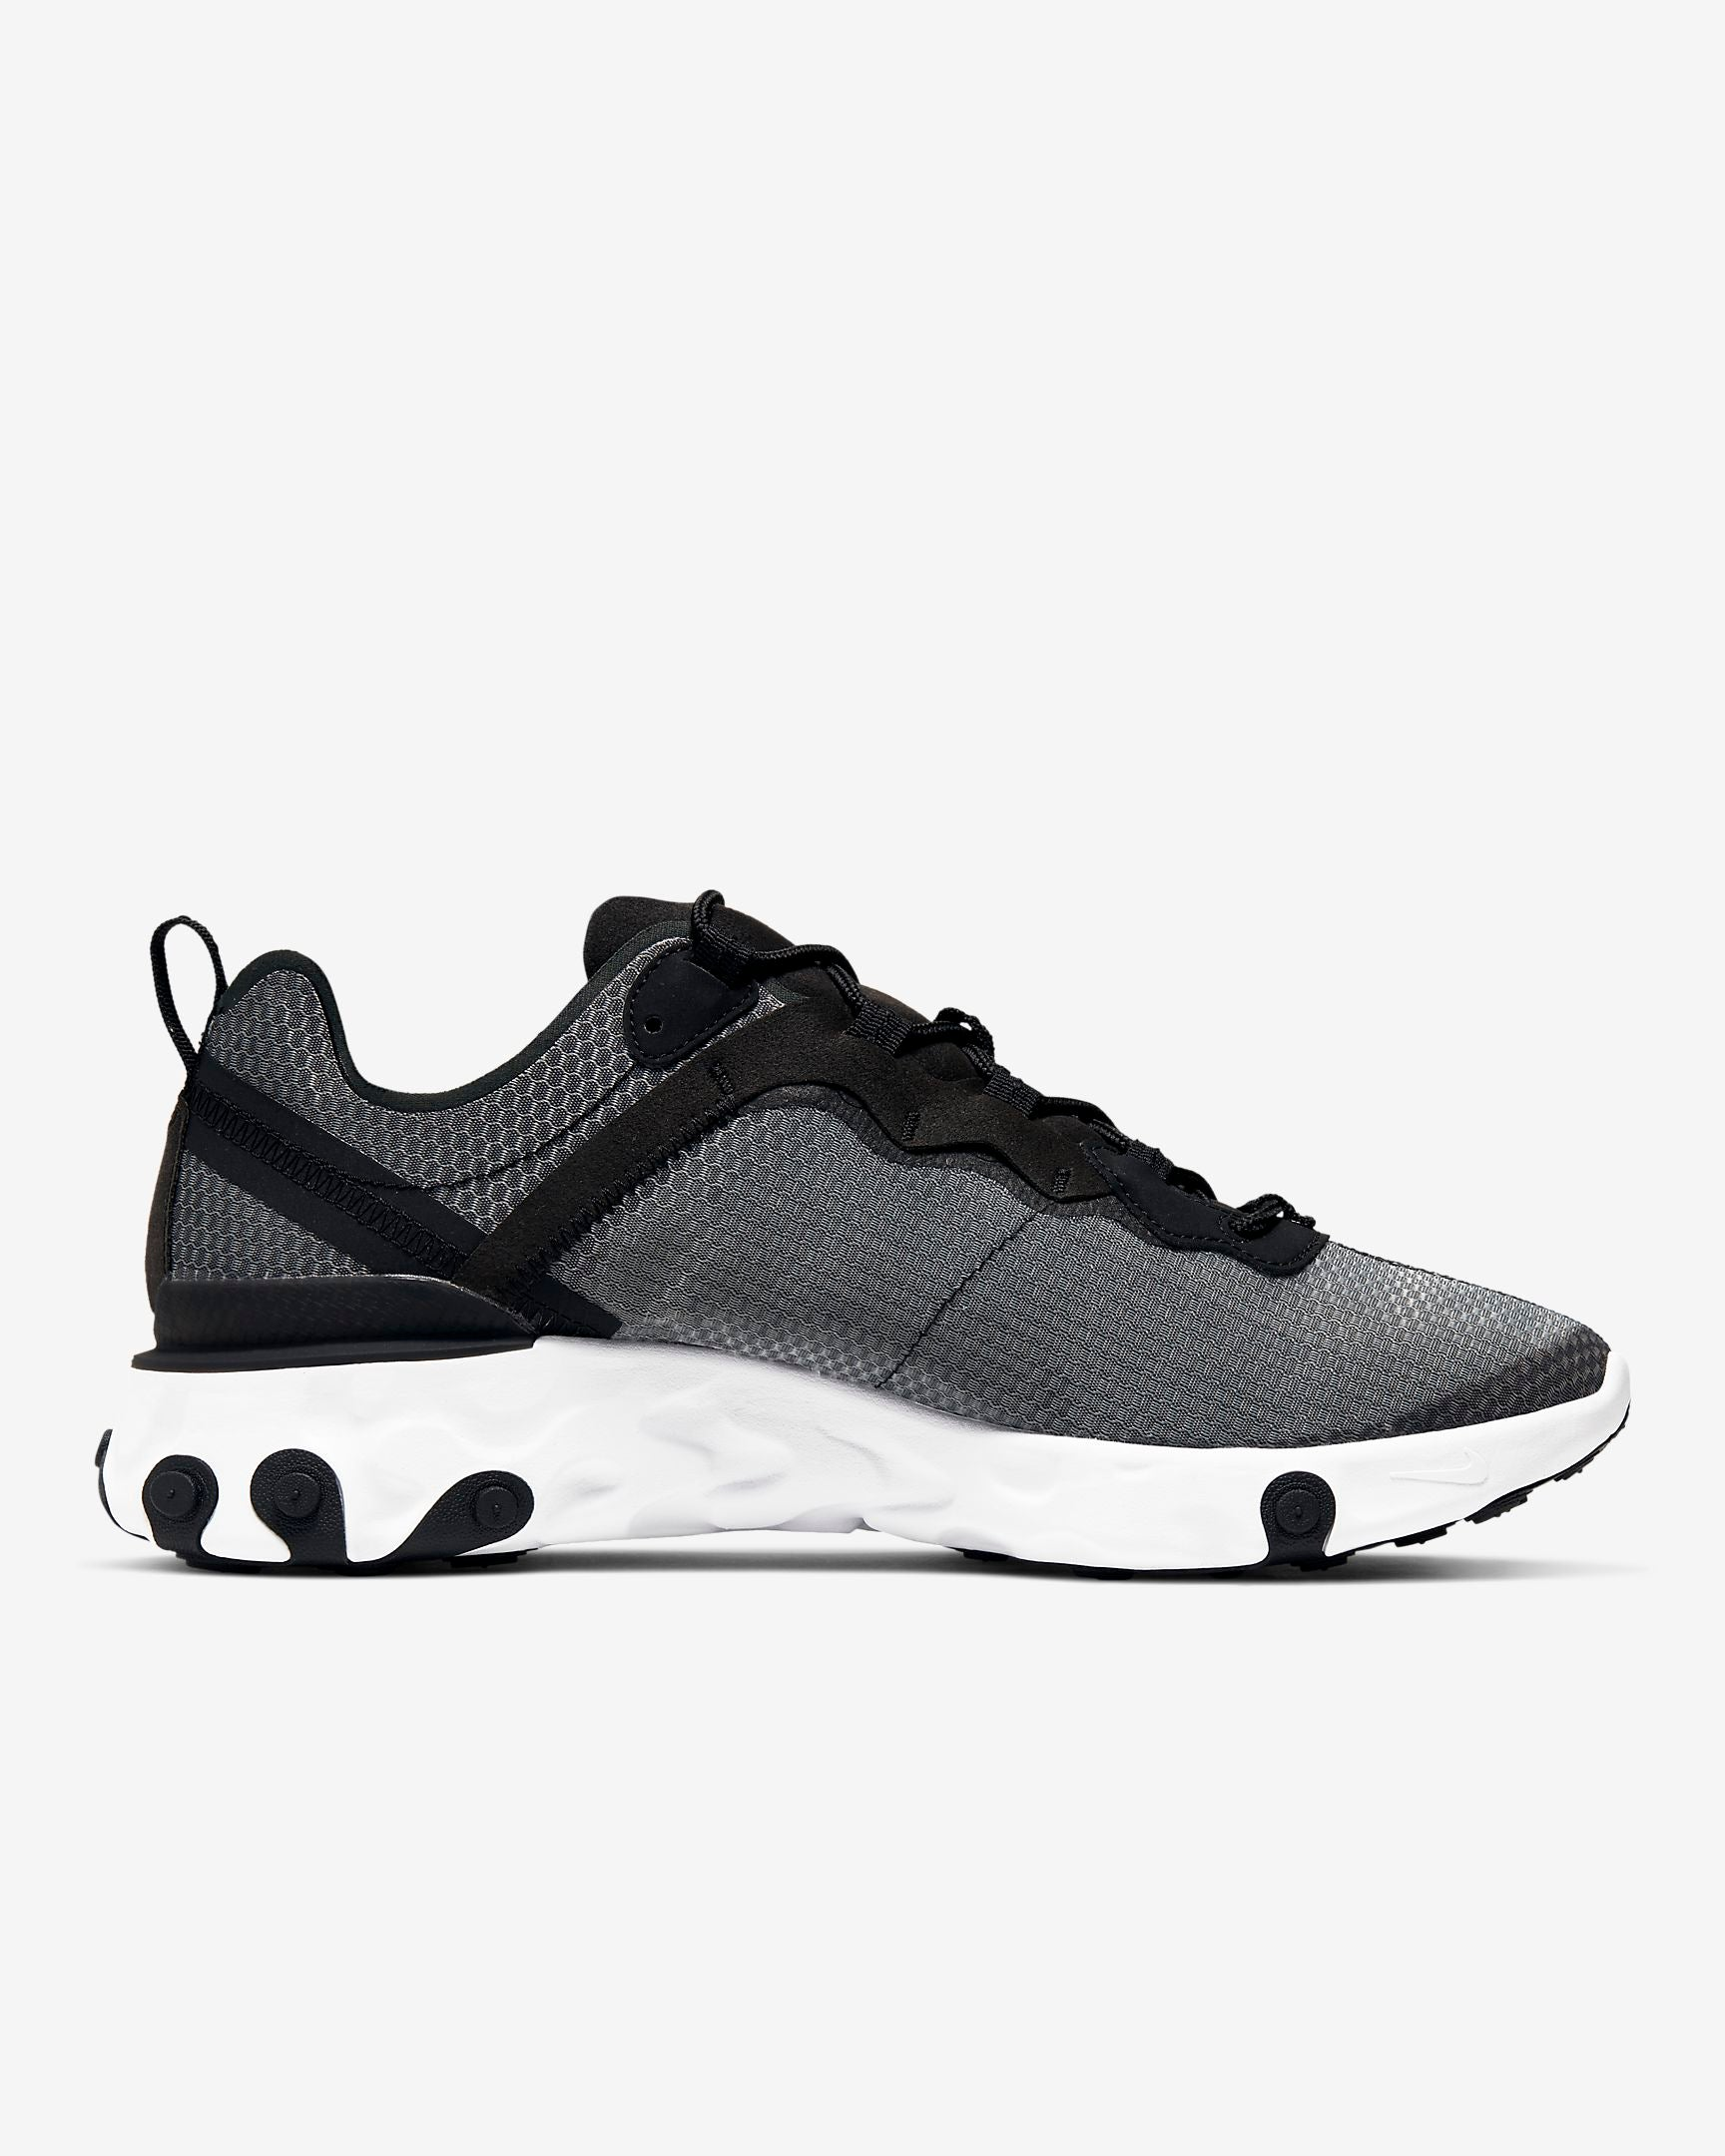 NIKE M'S FOOTWEAR NIKE REACT ELEMENT 55 SE - BLACK/ANTHRACITE/DARK GREY